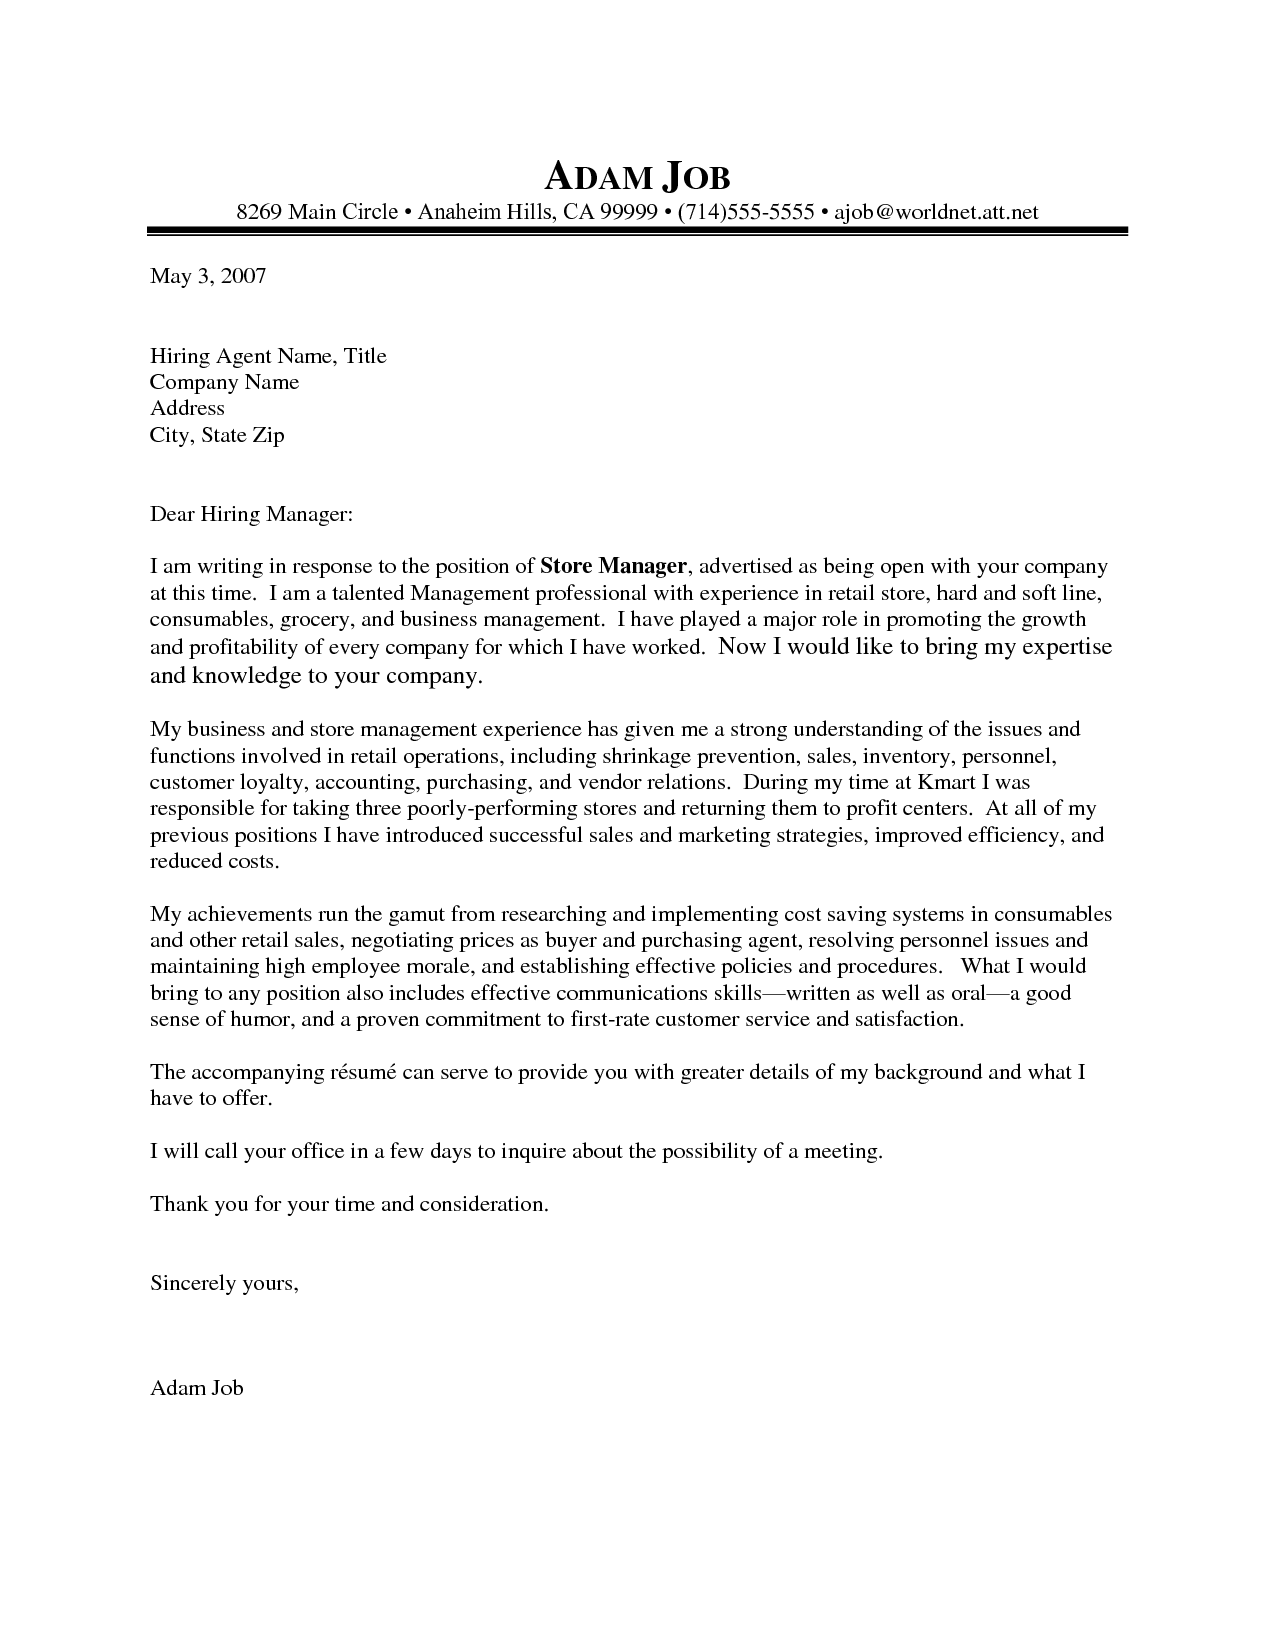 College Cover Letter Brilliant Application Letter Sample For Any Position College Admissions Review